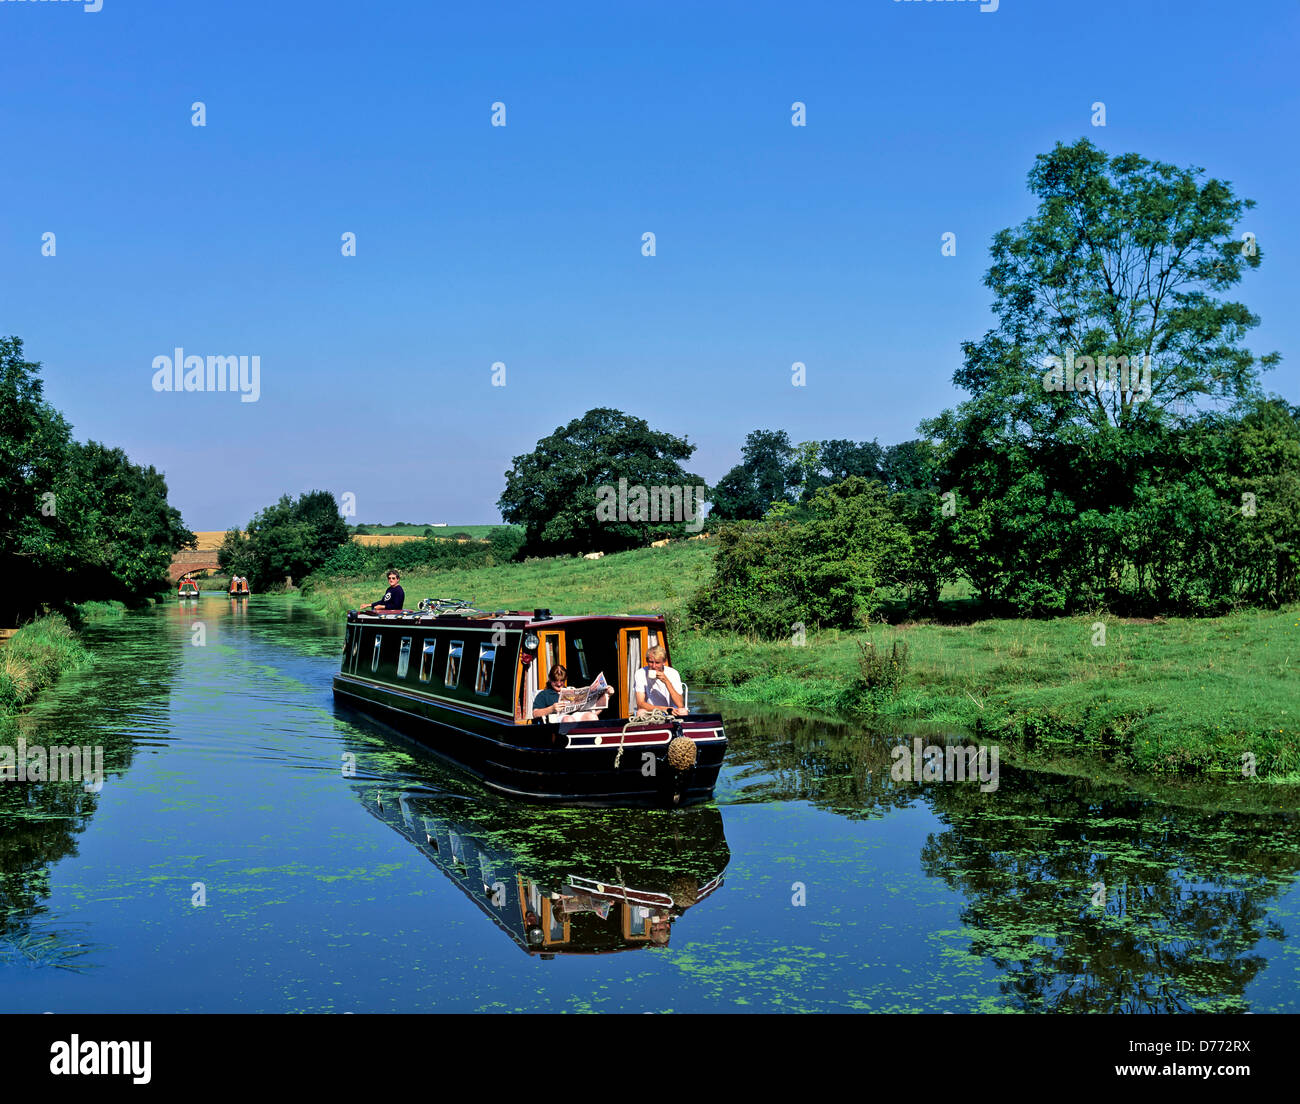 8685. Narrow boat on the Oxford canal, Warwickshire, England, UK, Europe - Stock Image